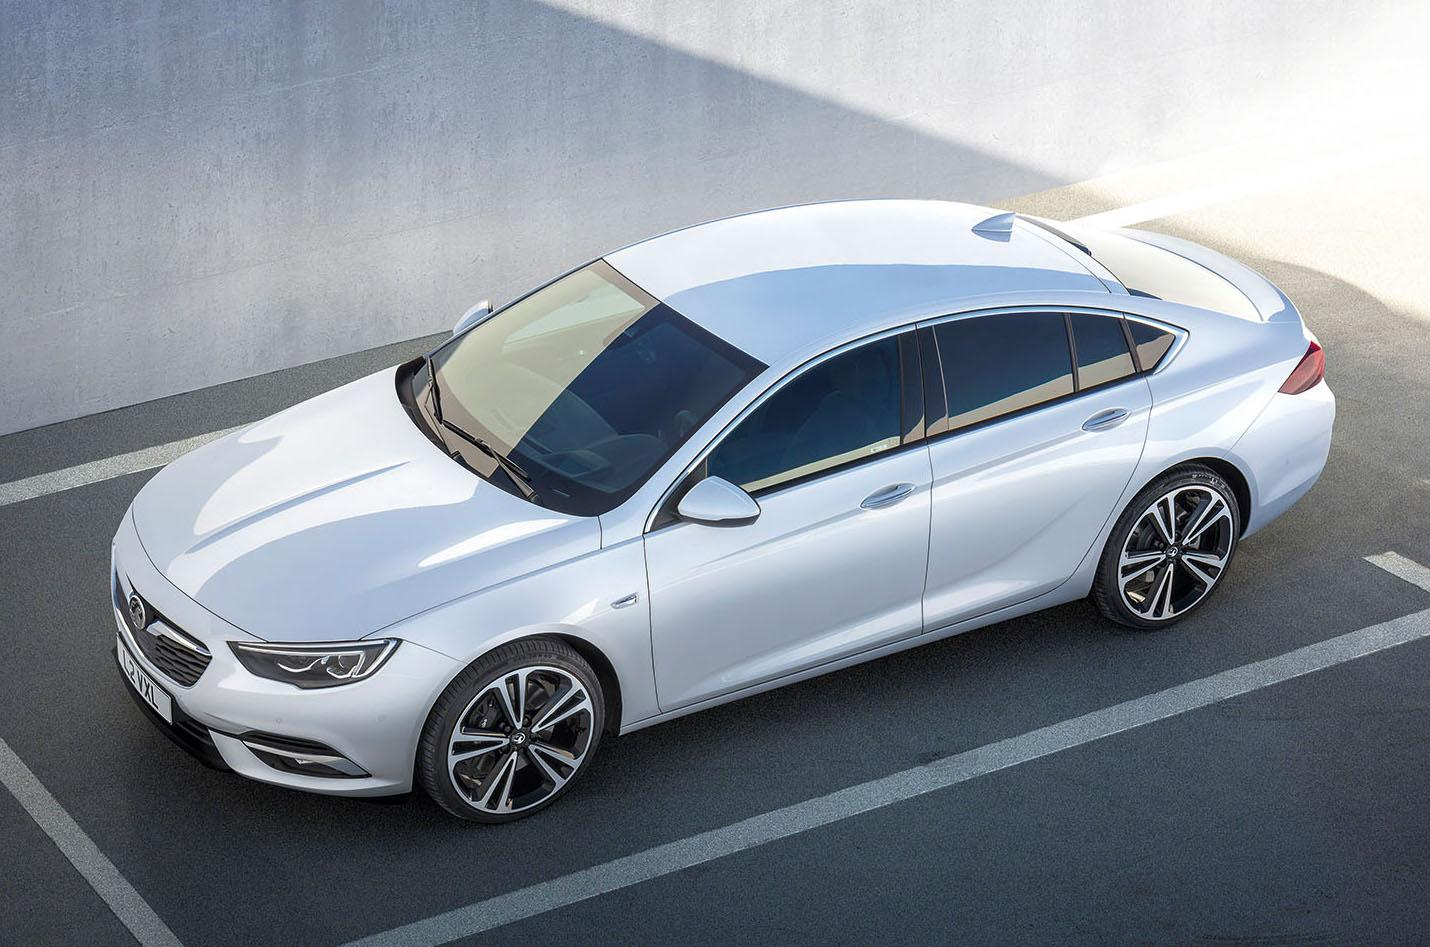 2017 Vauxhall Insignia Grand Sport pricing revealed